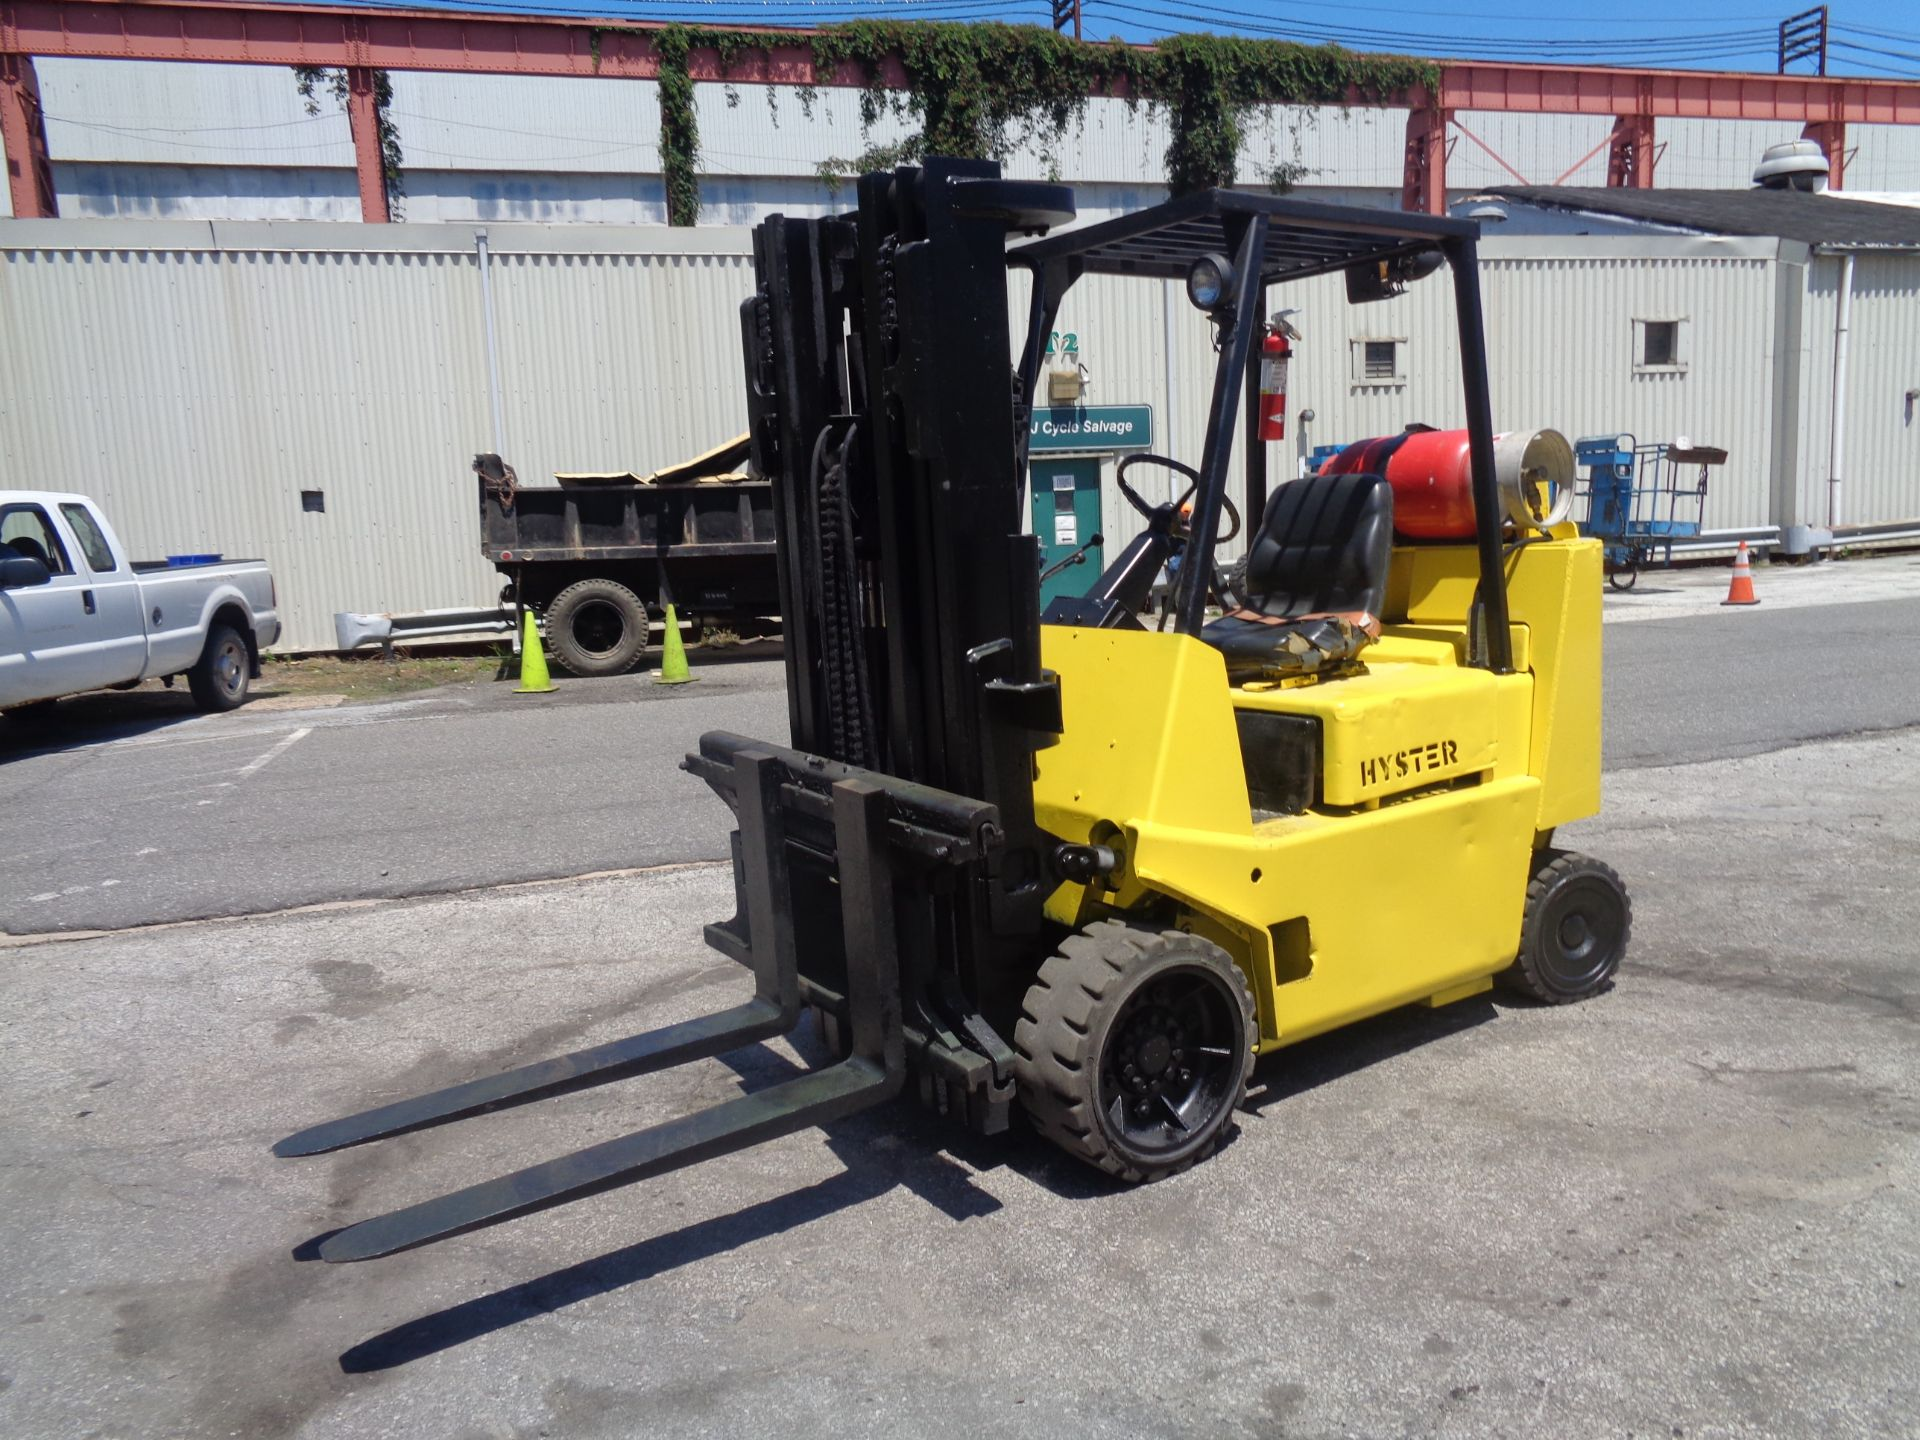 Hyster S80XL 8,000 lbs Forklift - Image 3 of 13